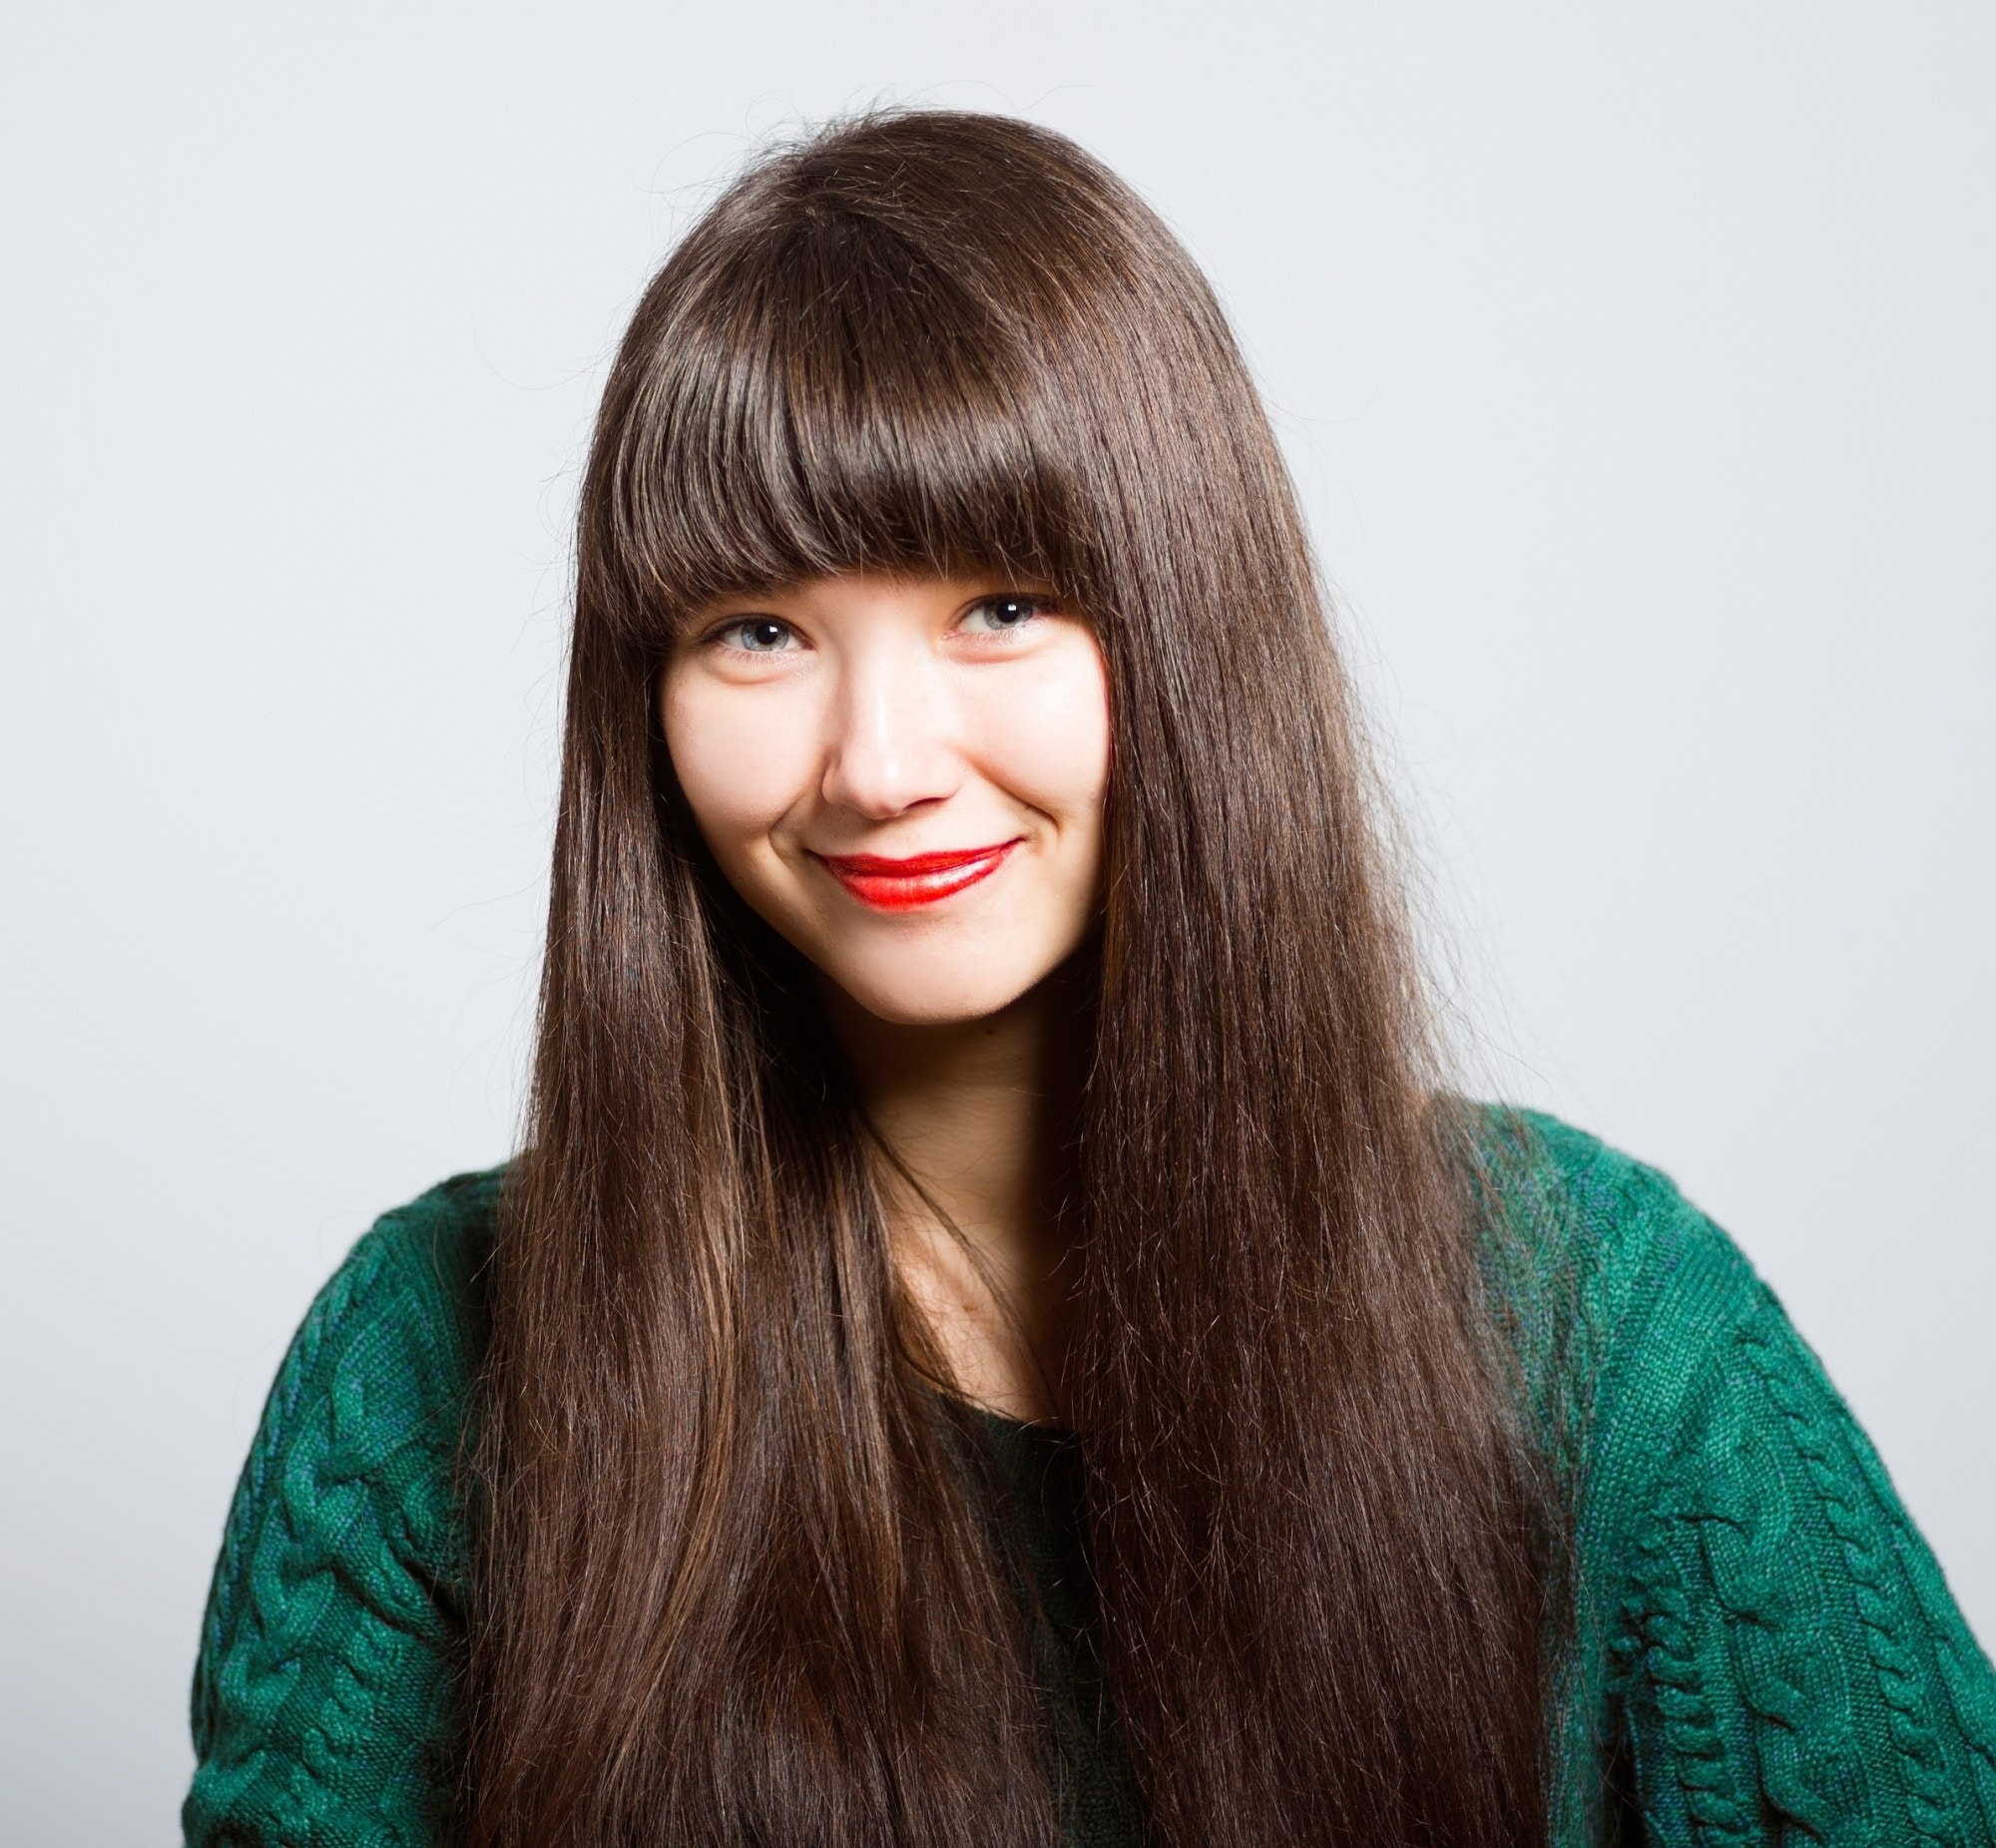 Best haircuts for long hair: Woman wearing a green sweater and long straight dark brown hair with full bangs standing against white background